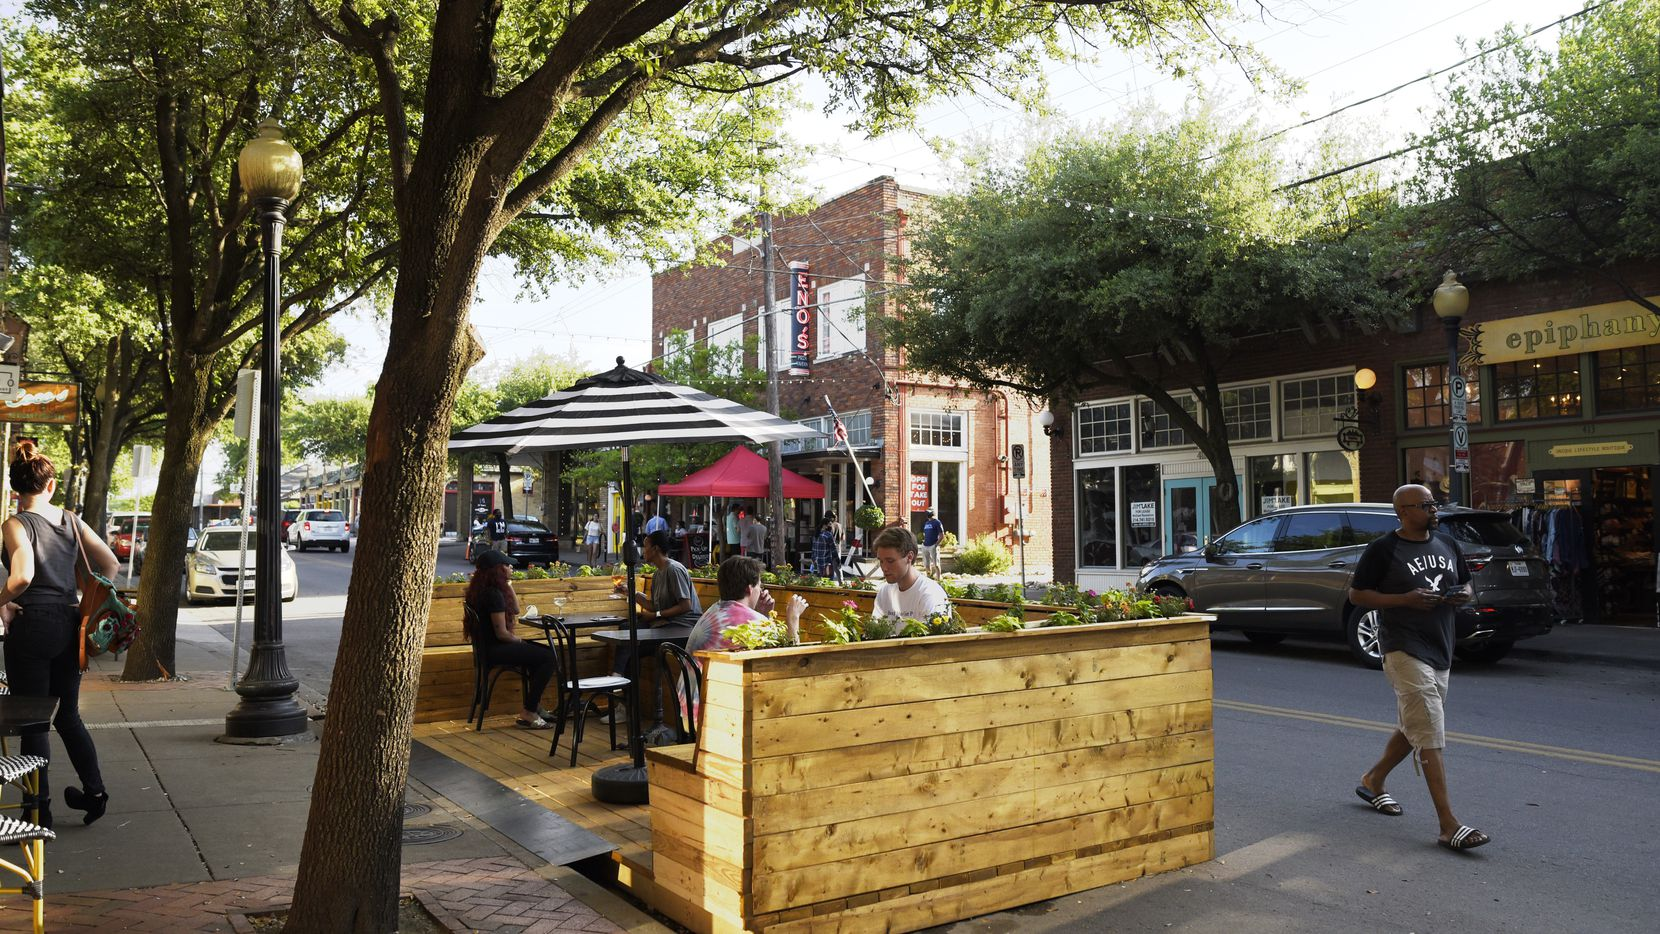 A temporary seating area outside of Revelers Hall on Bishop Avenue in Dallas, May 15, 2020. Co-owner Jason Roberts said the built structure is an example of a semipermanent parklet, or outdoor seating area that spills out onto a street.